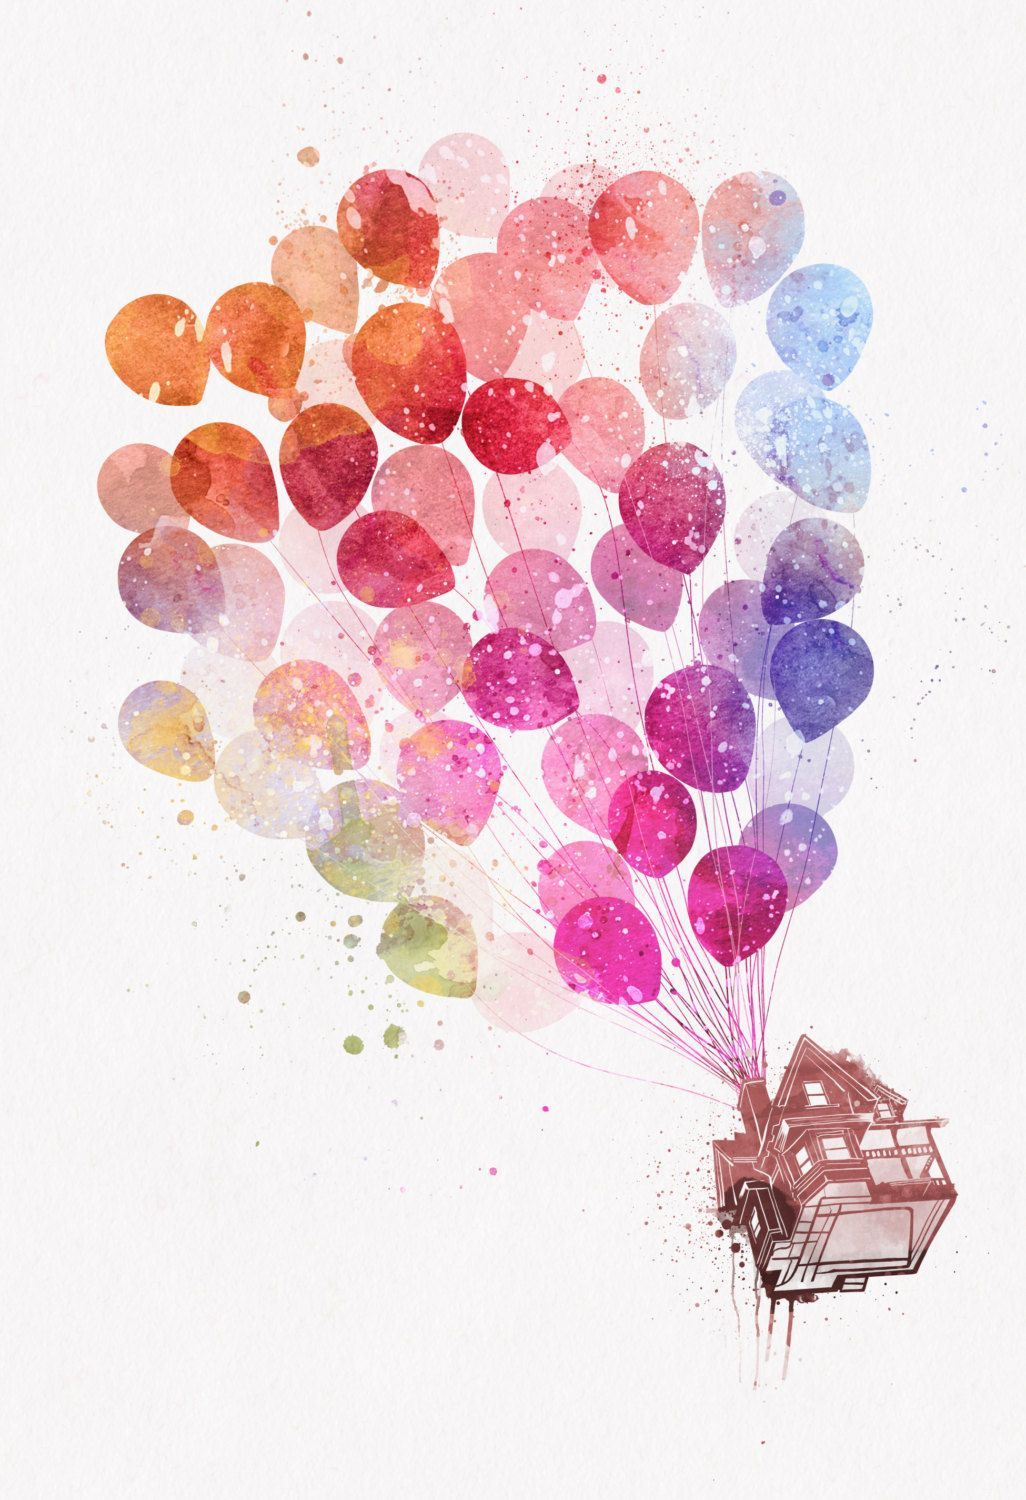 Disney Pixar Up Flying House With Balloons Watercolor Splatter Art Print